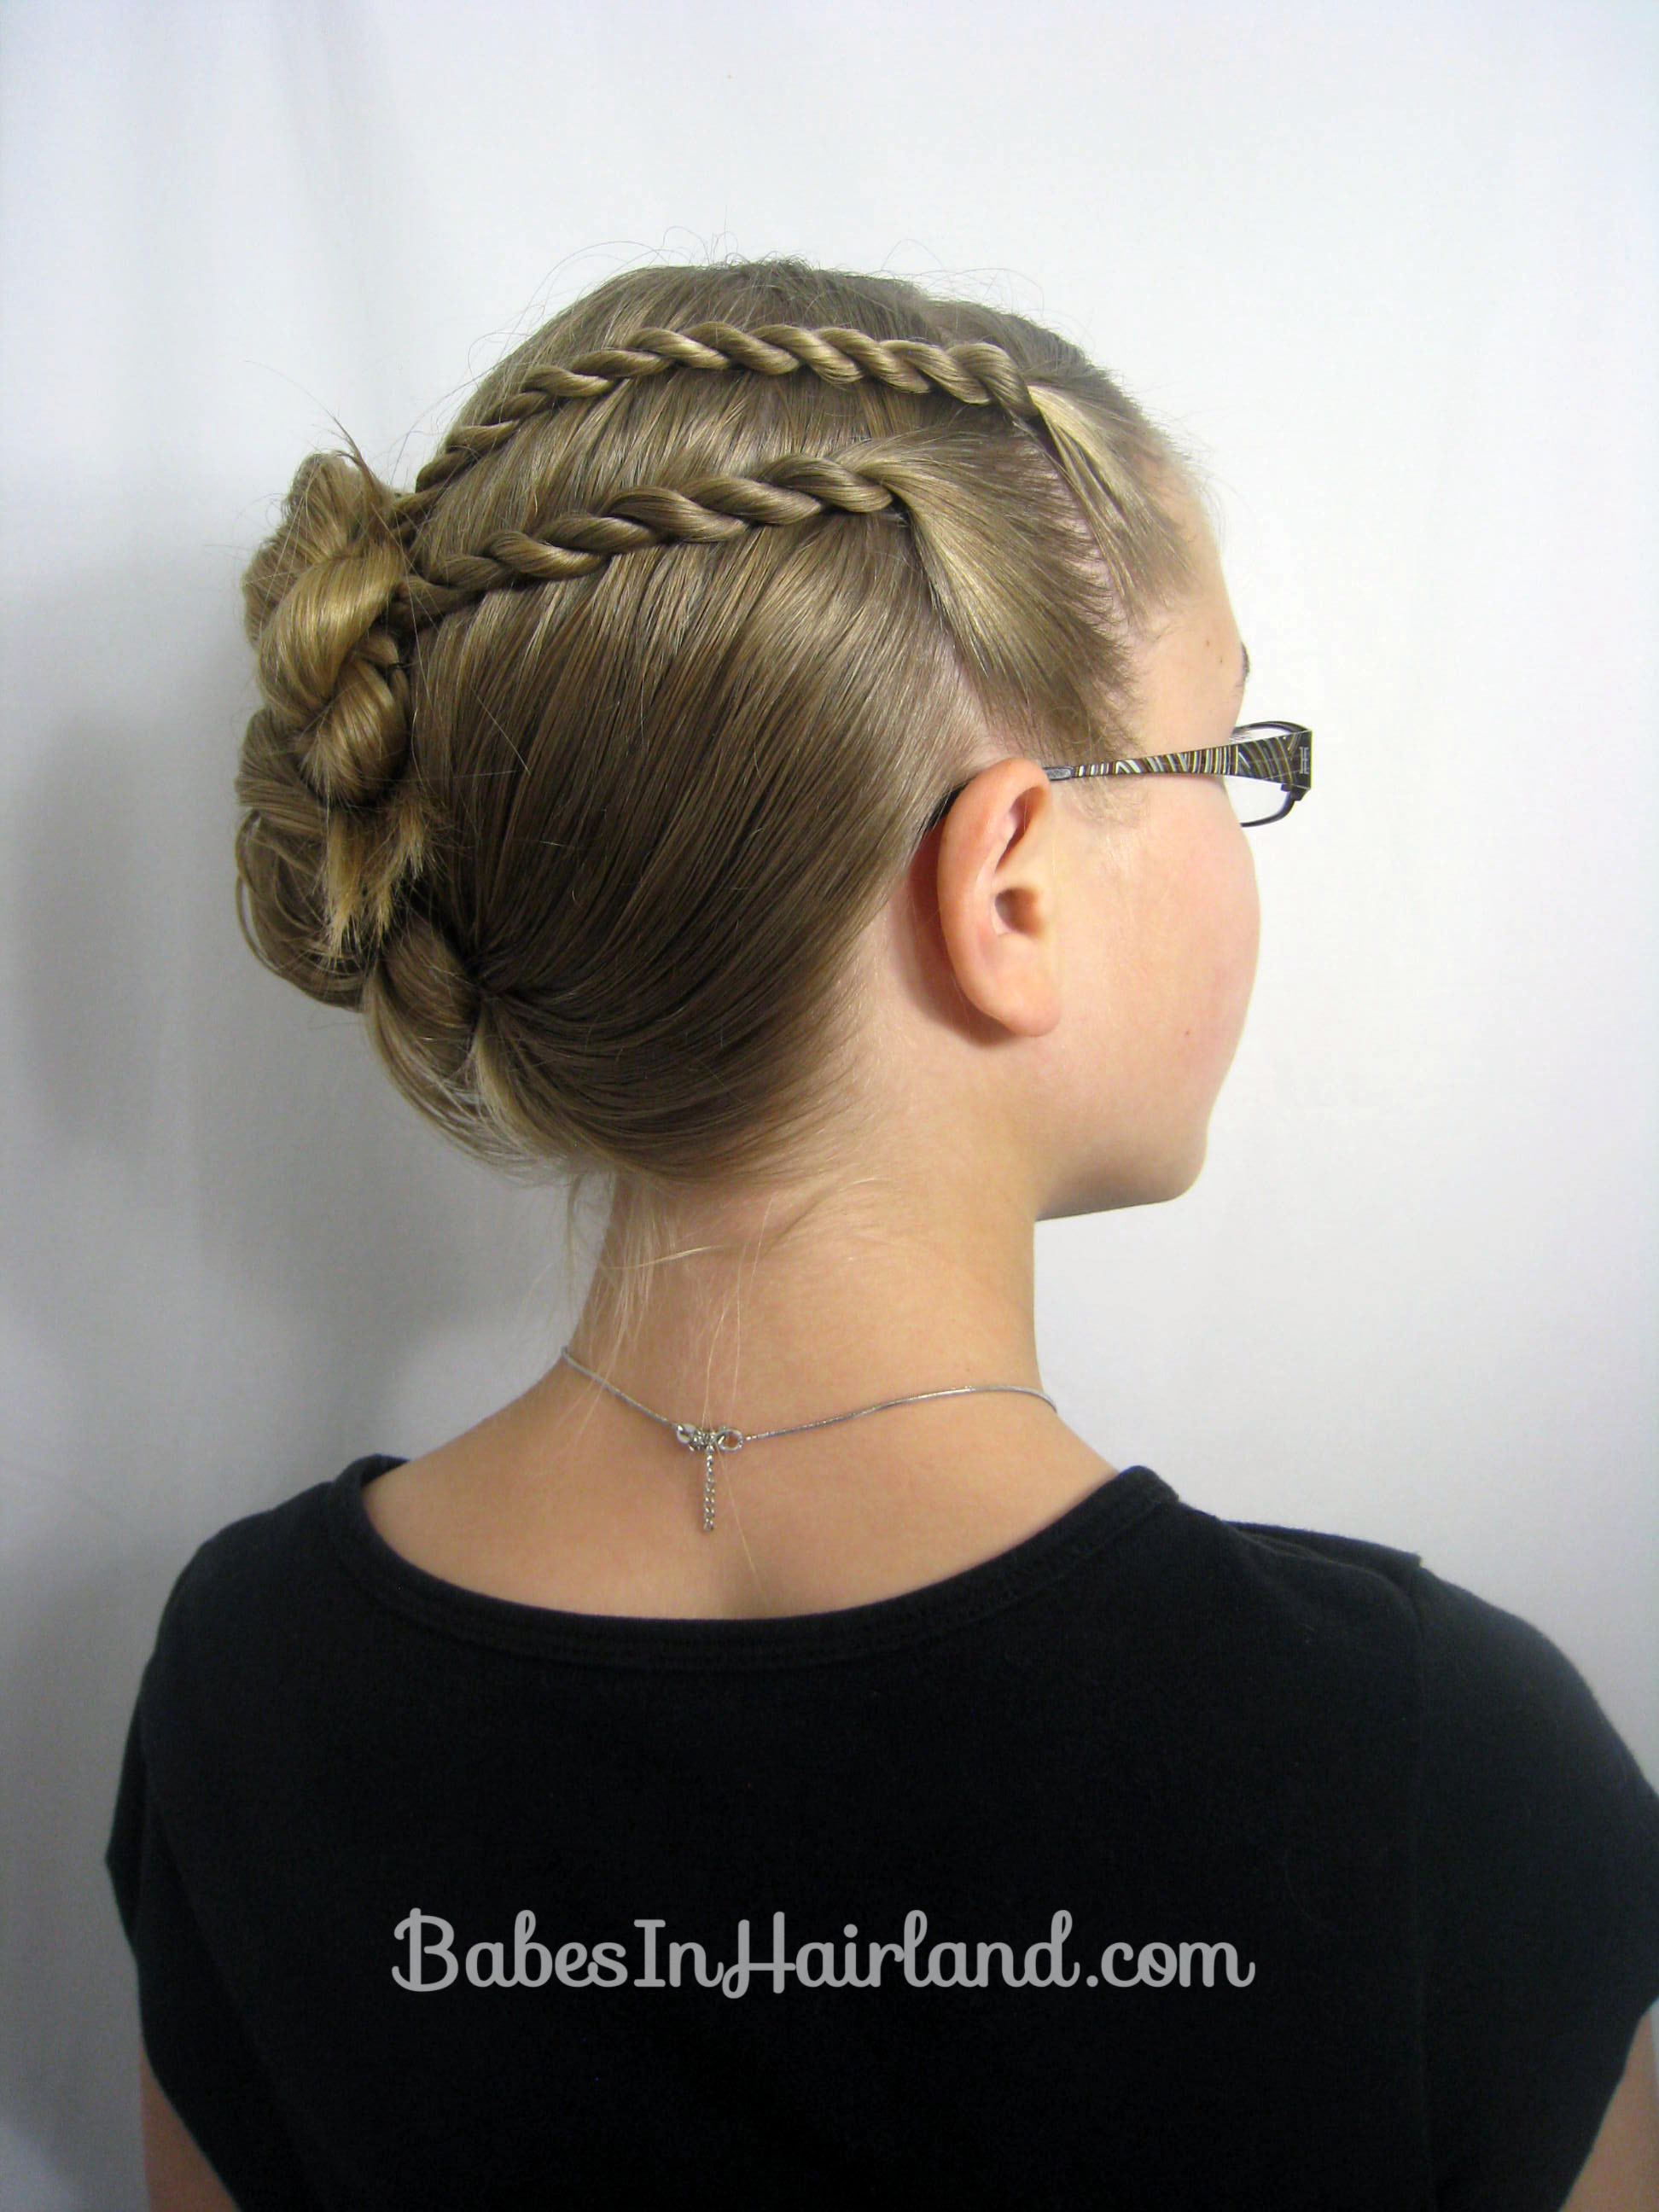 prom hair styles for hair rope braid hairstyle in hairland 2532